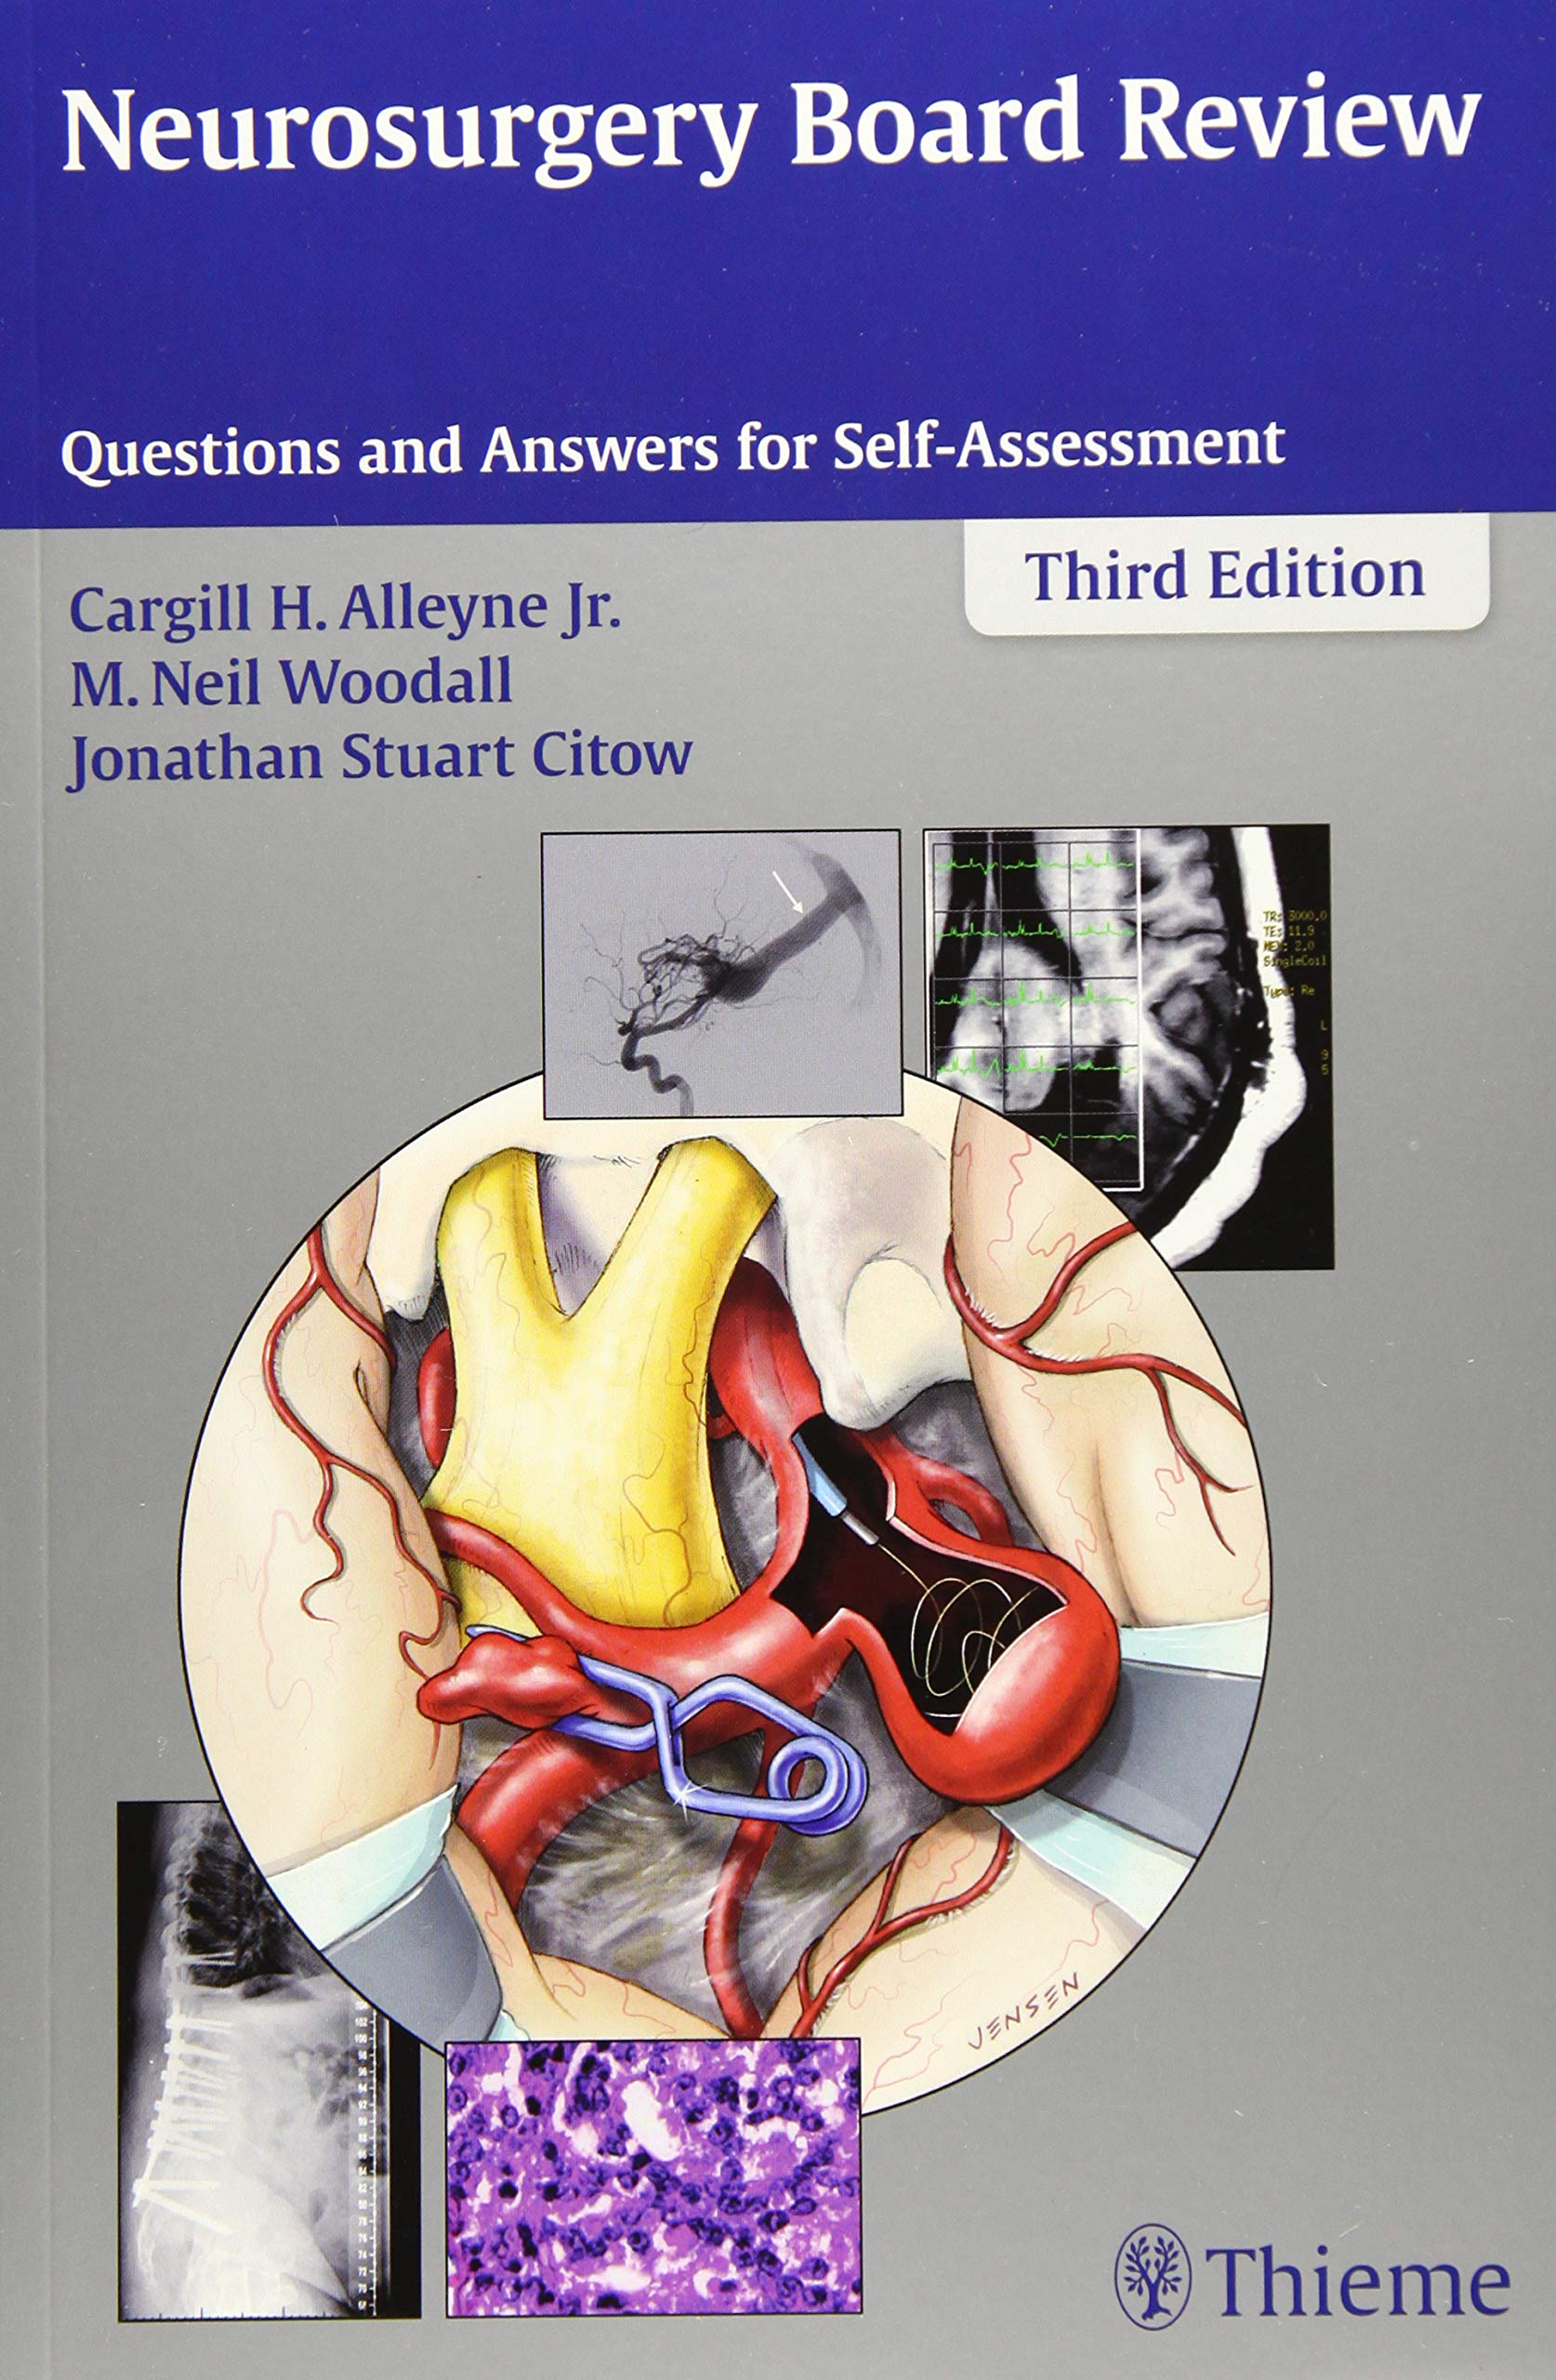 Image OfNeurosurgery Board Review: Questions And Answers For Self-Assessment